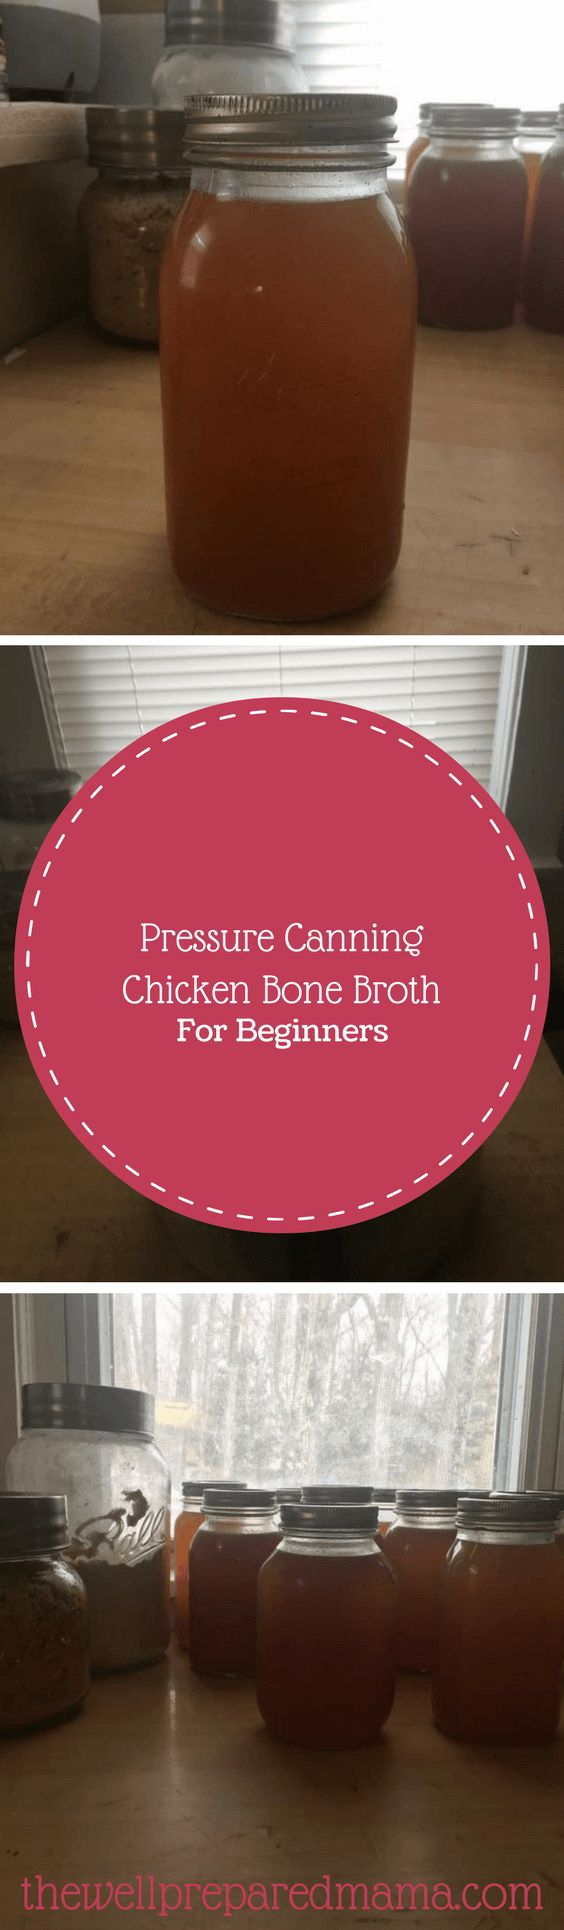 Pressure Canning Chicken Bone Broth For Beginners. There is something that nobody tells you, when you start to can, it is kind of addicting.There is one item that my family uses a lot of and that is chicken broth. I put it in everything from my spaghetti sauce to just roasting a chicken in the oven.